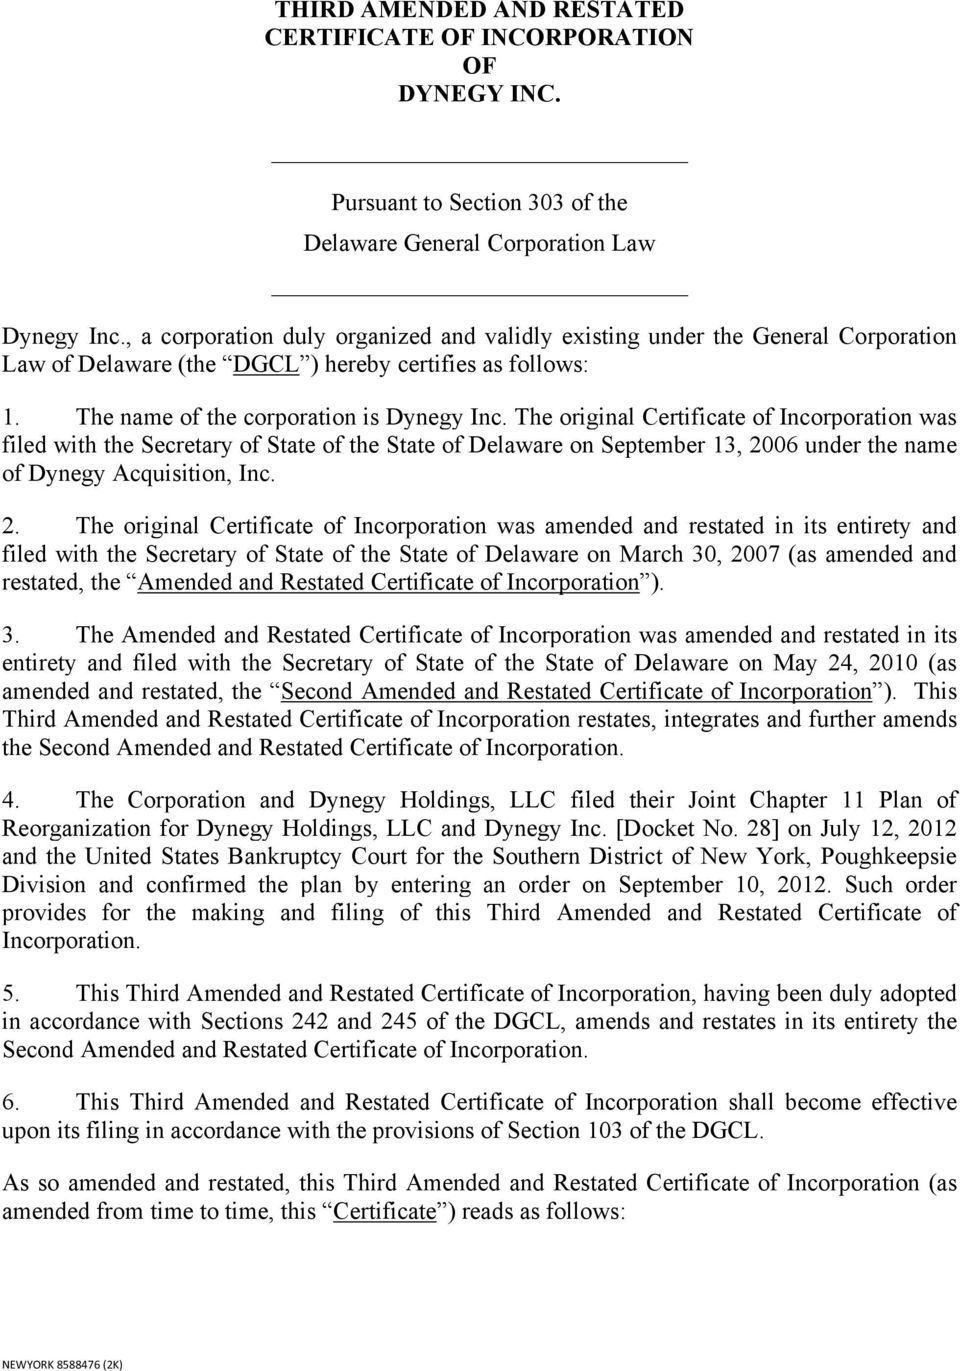 The original Certificate of Incorporation was filed with the Secretary of State of the State of Delaware on September 13, 20